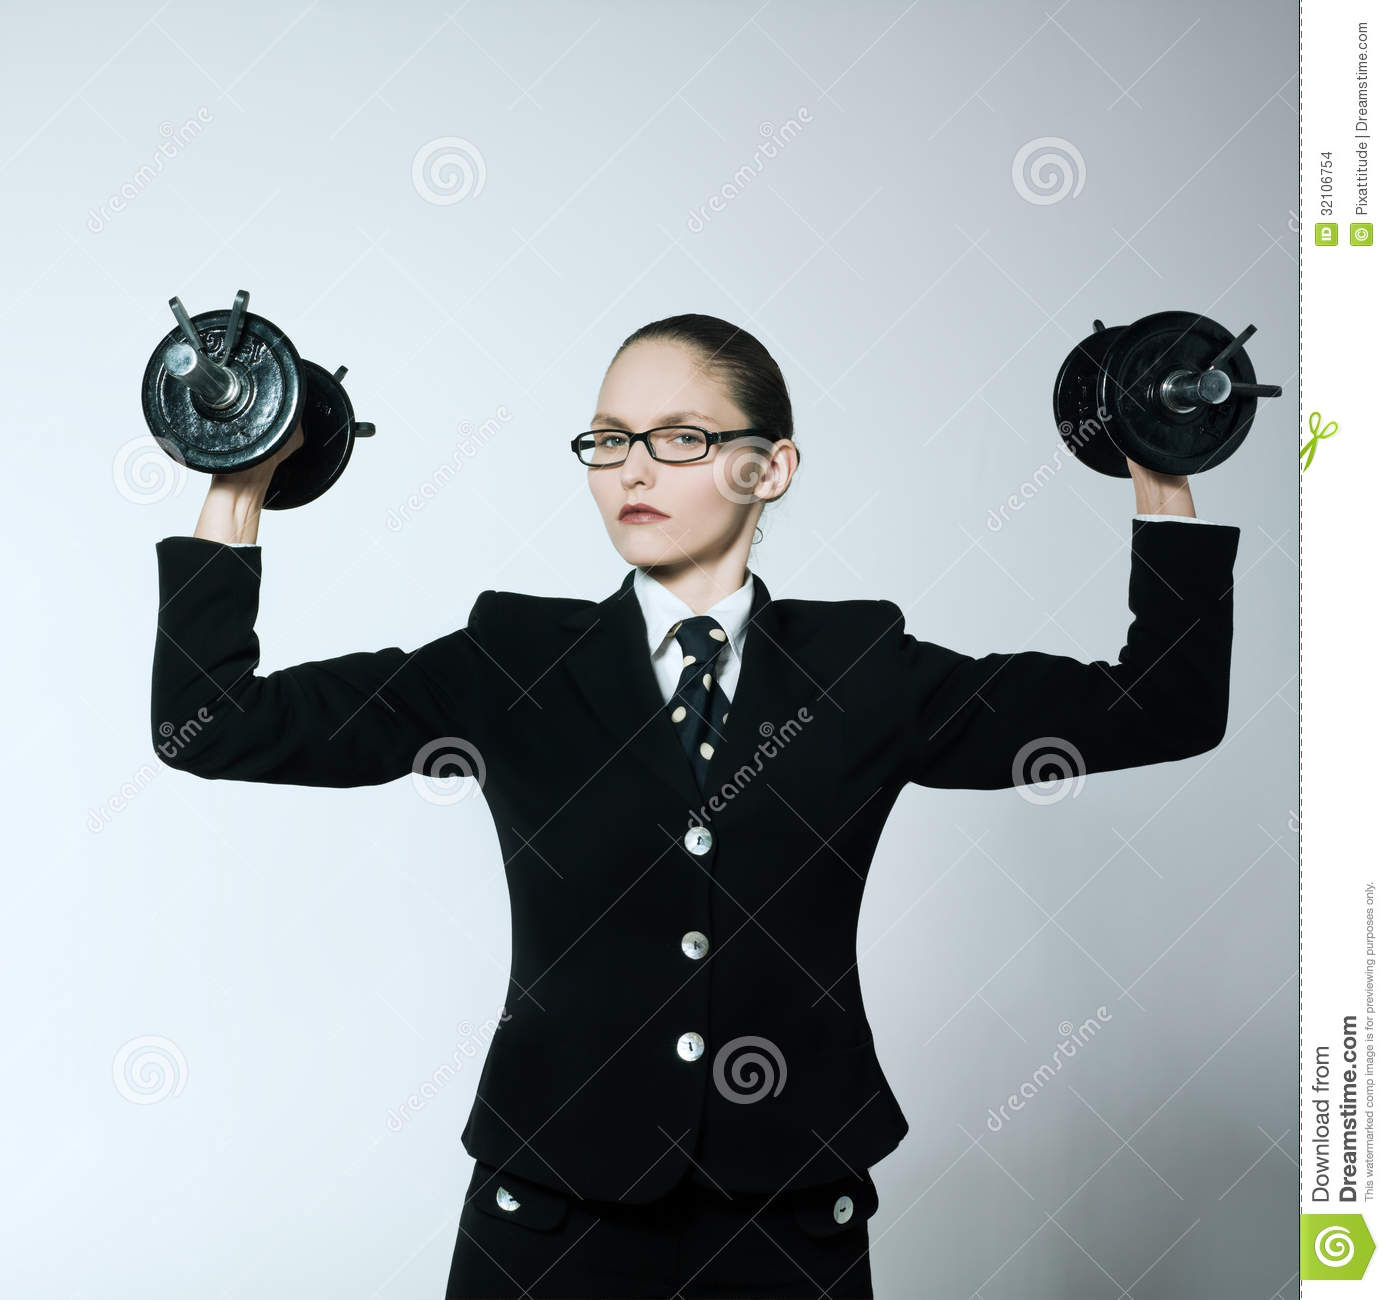 Strong business woman stock photo. Image of arrogance ...